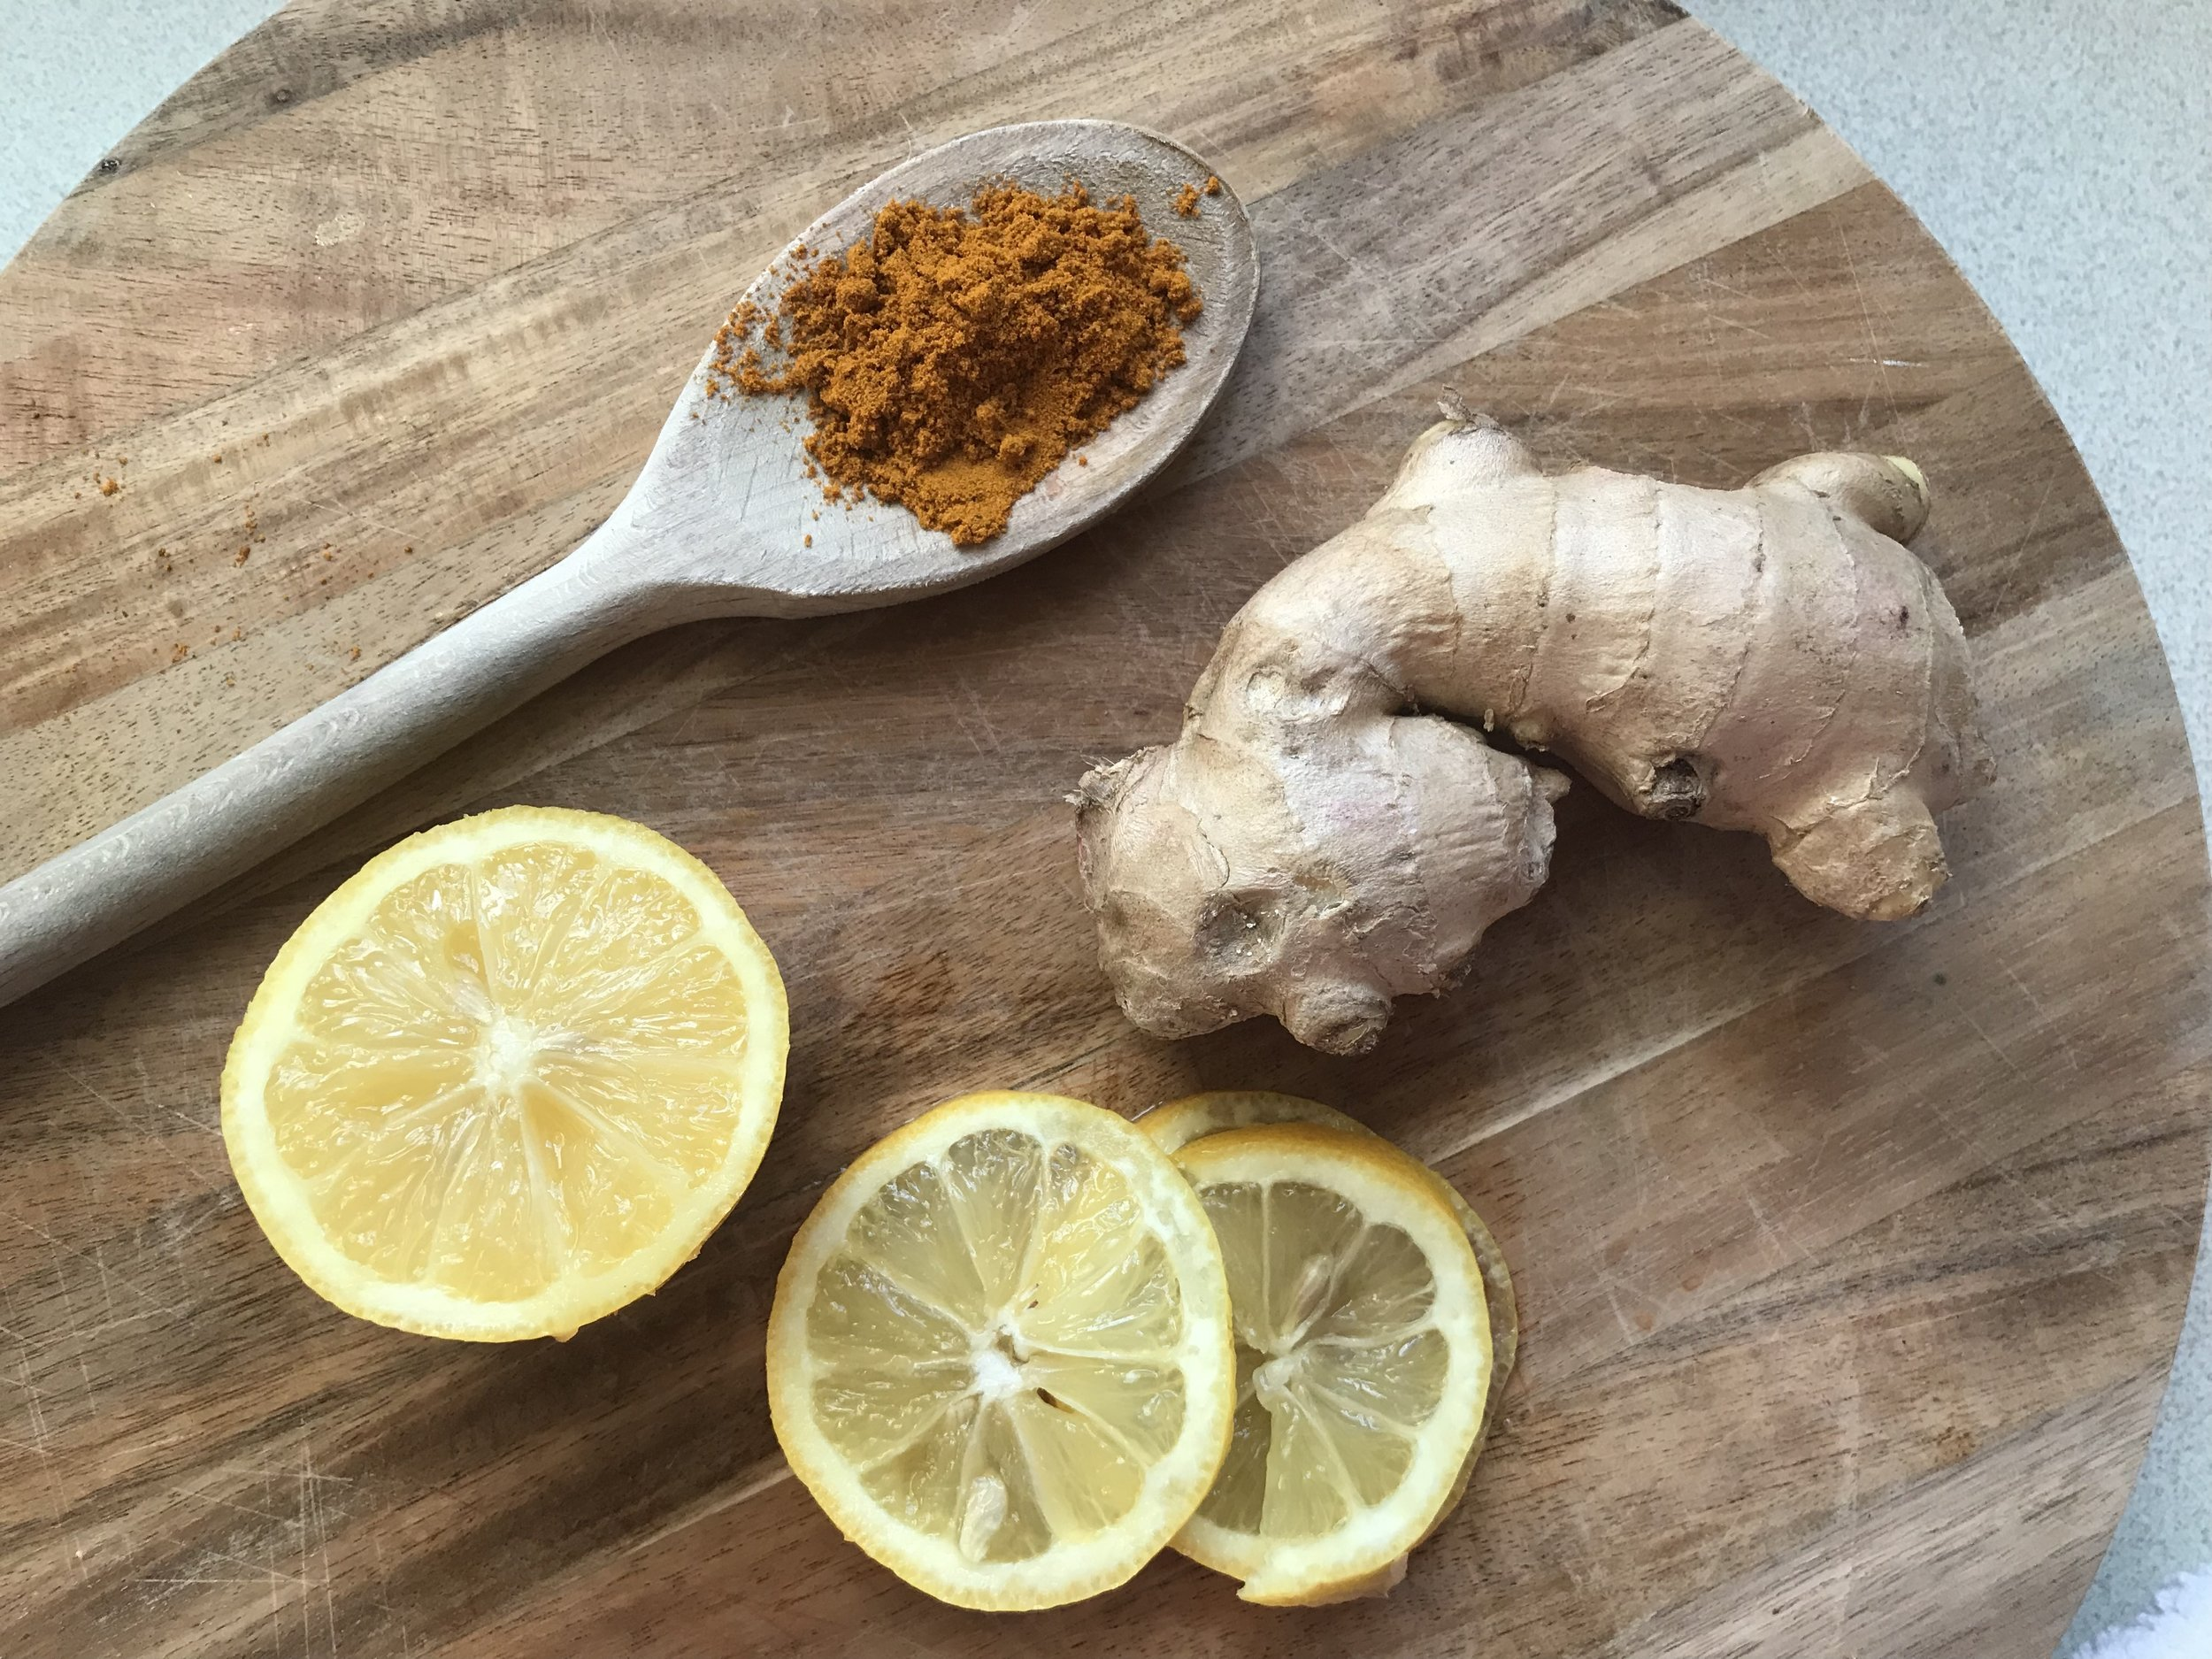 Organic turmeric, fresh ginger and lemon with hot water makes an excellent immunity booster.